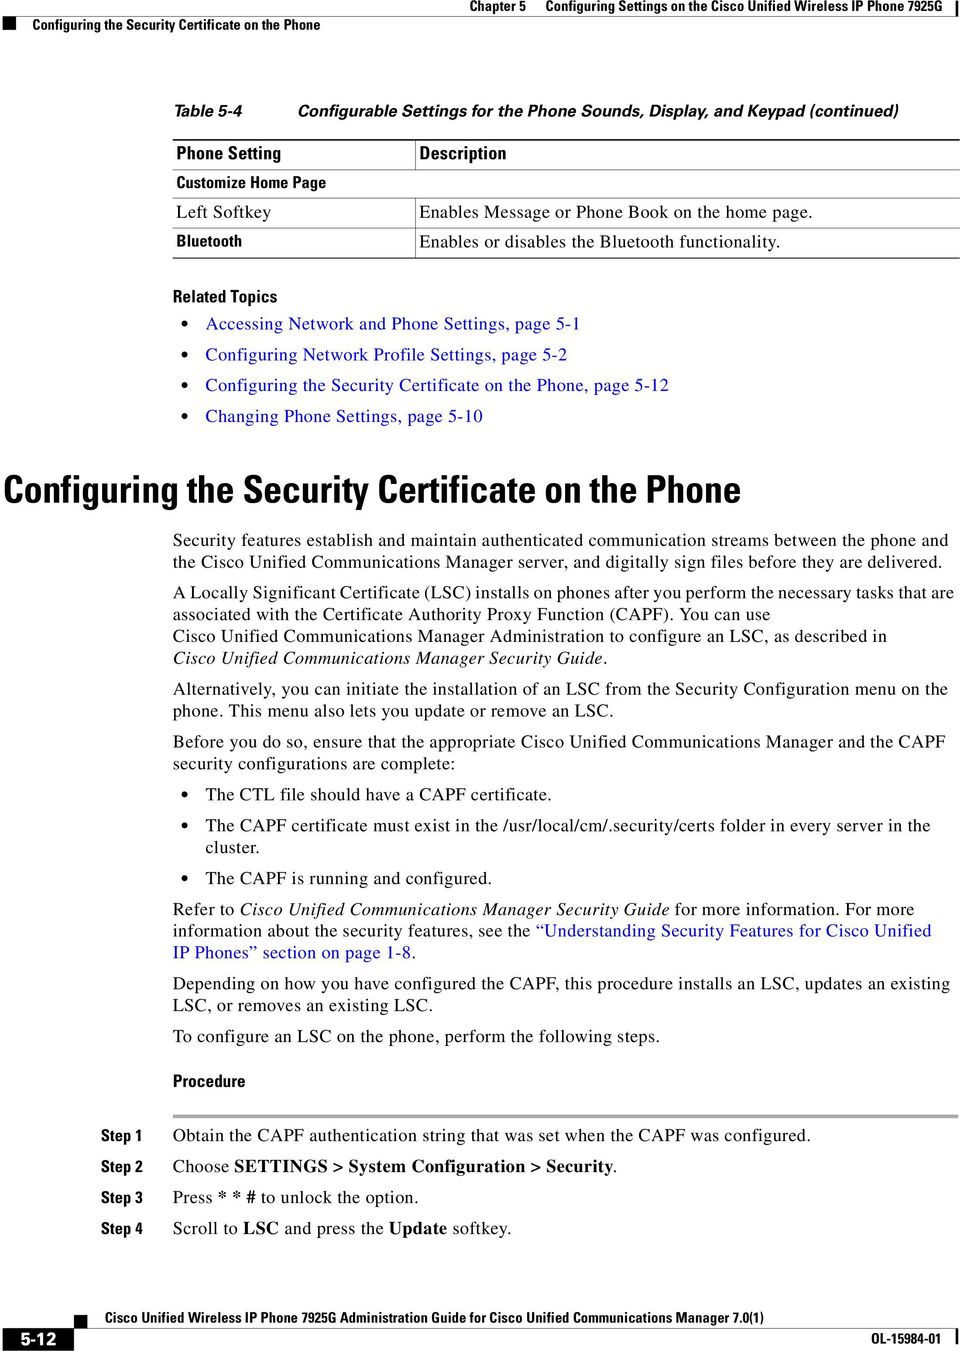 Related Topics Accessing Network and Phone Settings, page 5-1 Configuring Network Profile Settings, page 5-2 Configuring the Security Certificate on the Phone, page 5-12 Changing Phone Settings, page